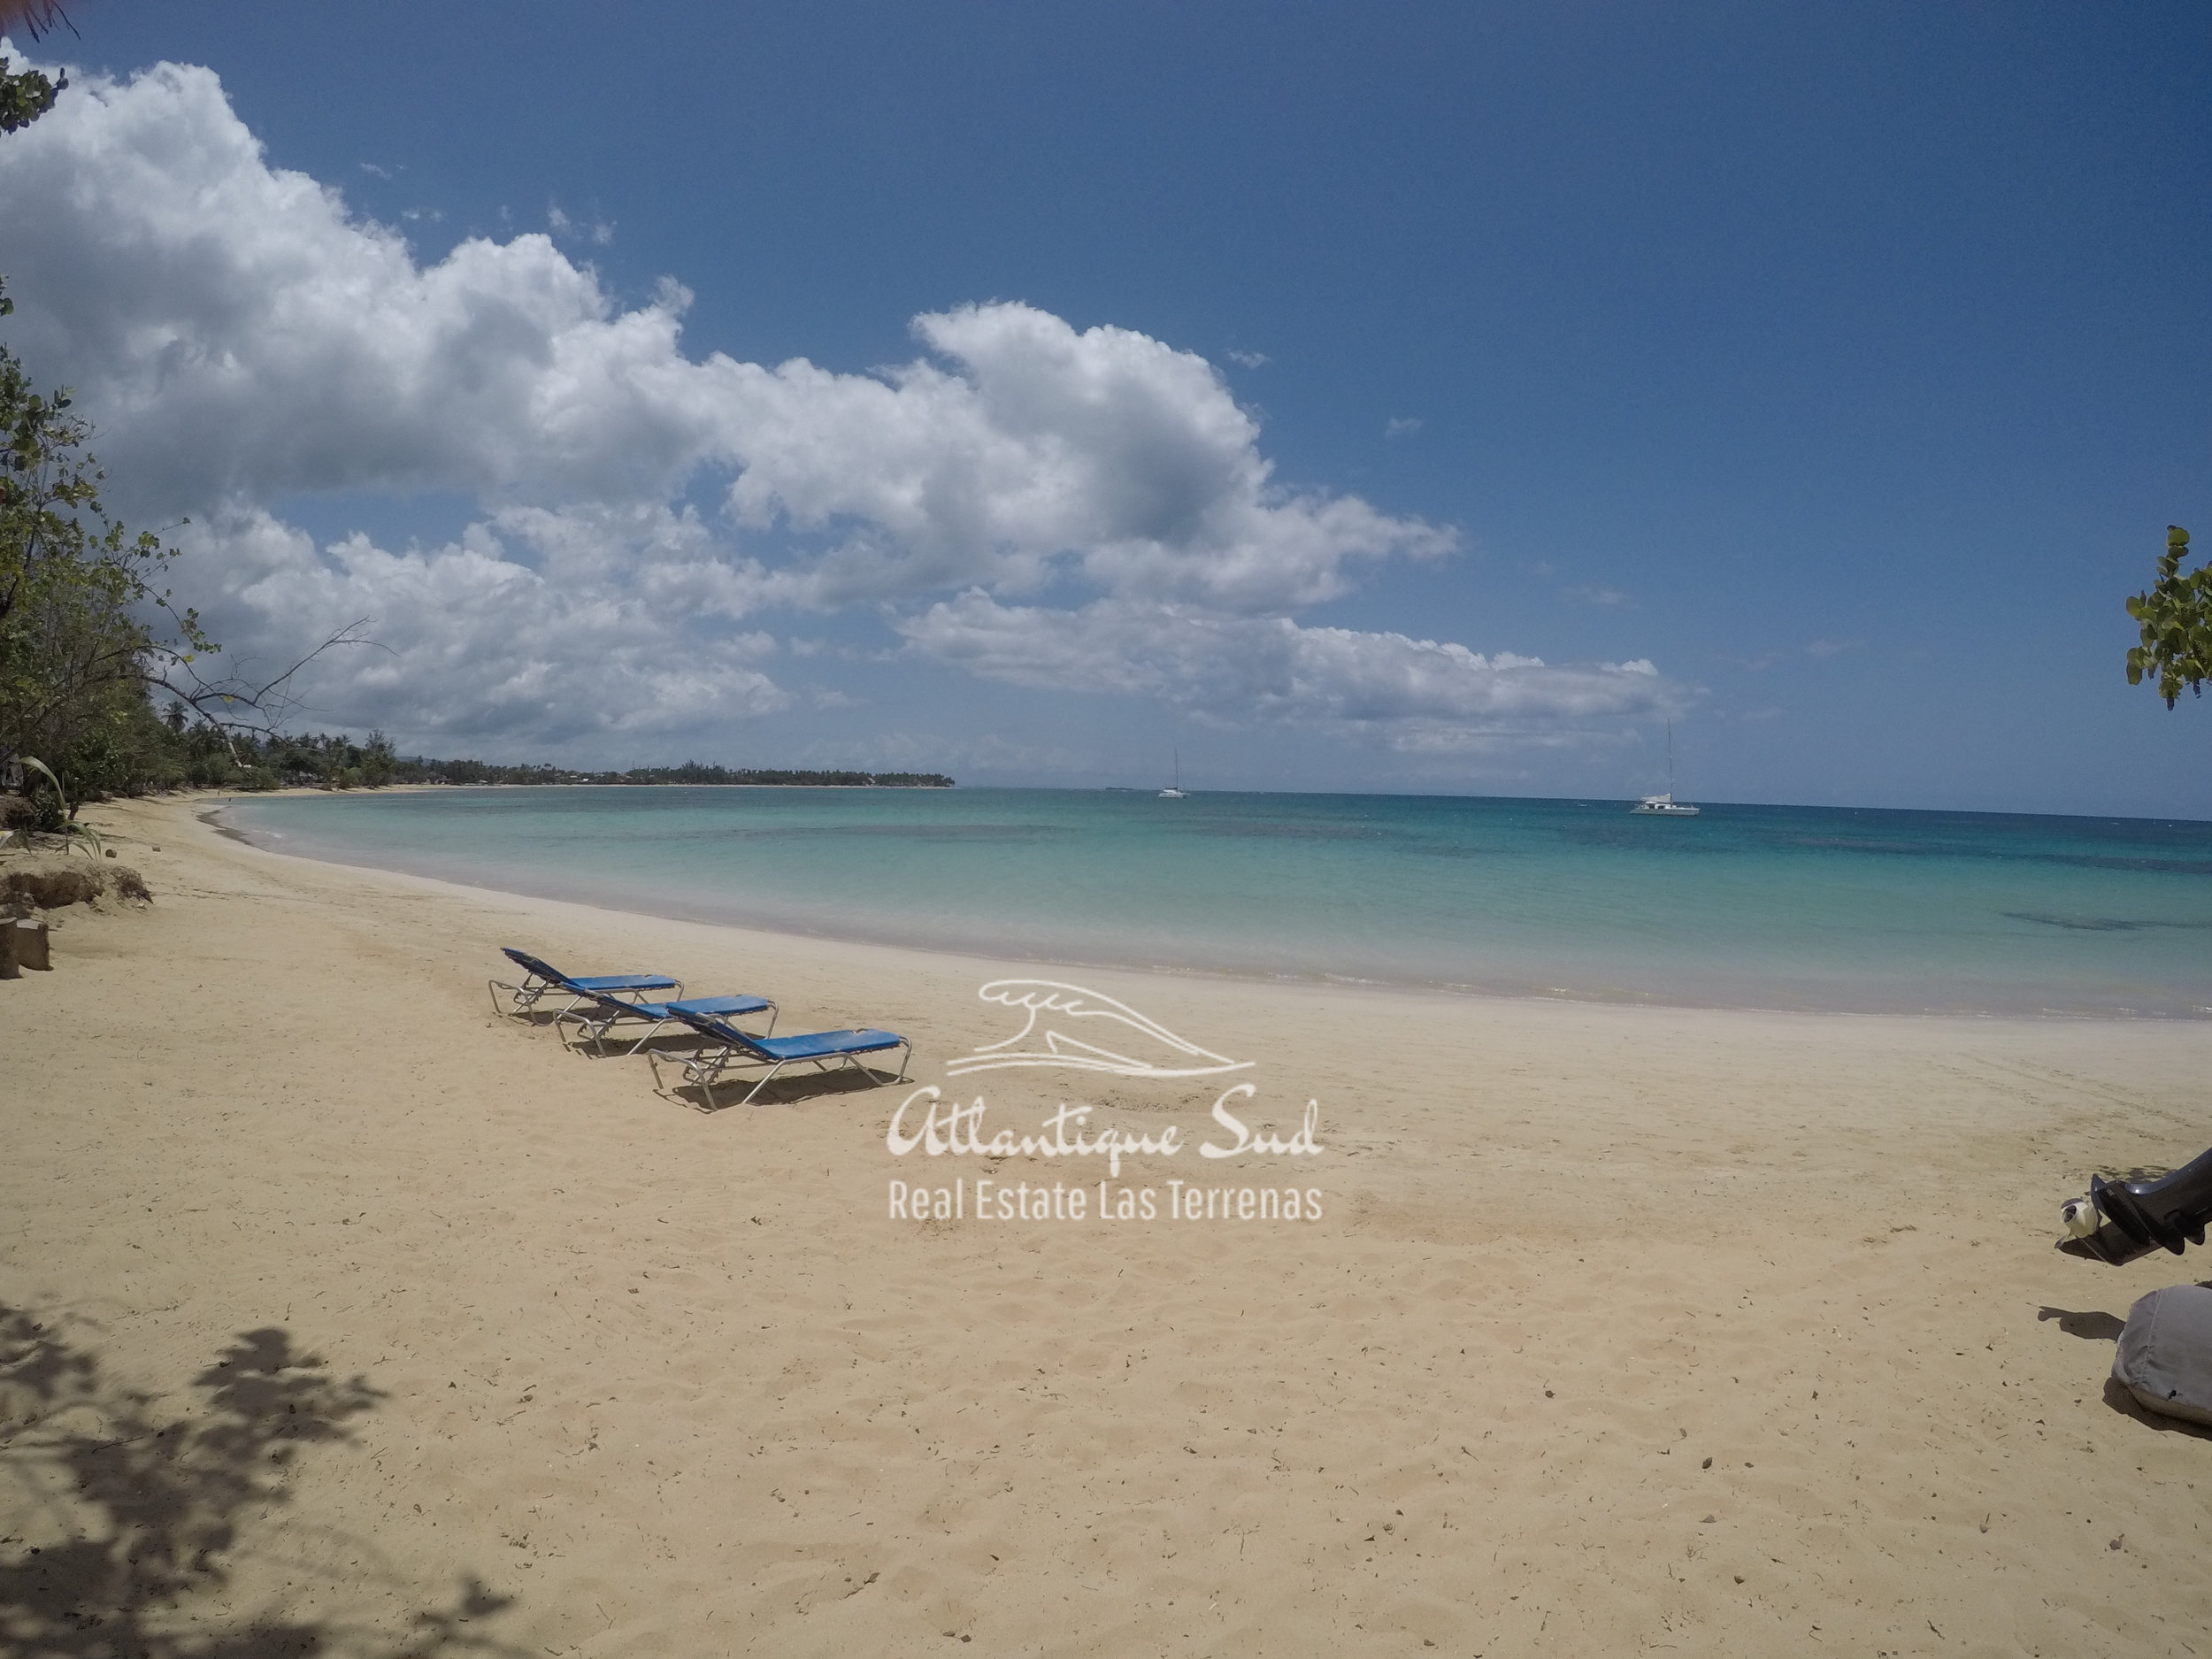 beachfront-hotel-las-terrenas-for-sale-partnership23.jpg